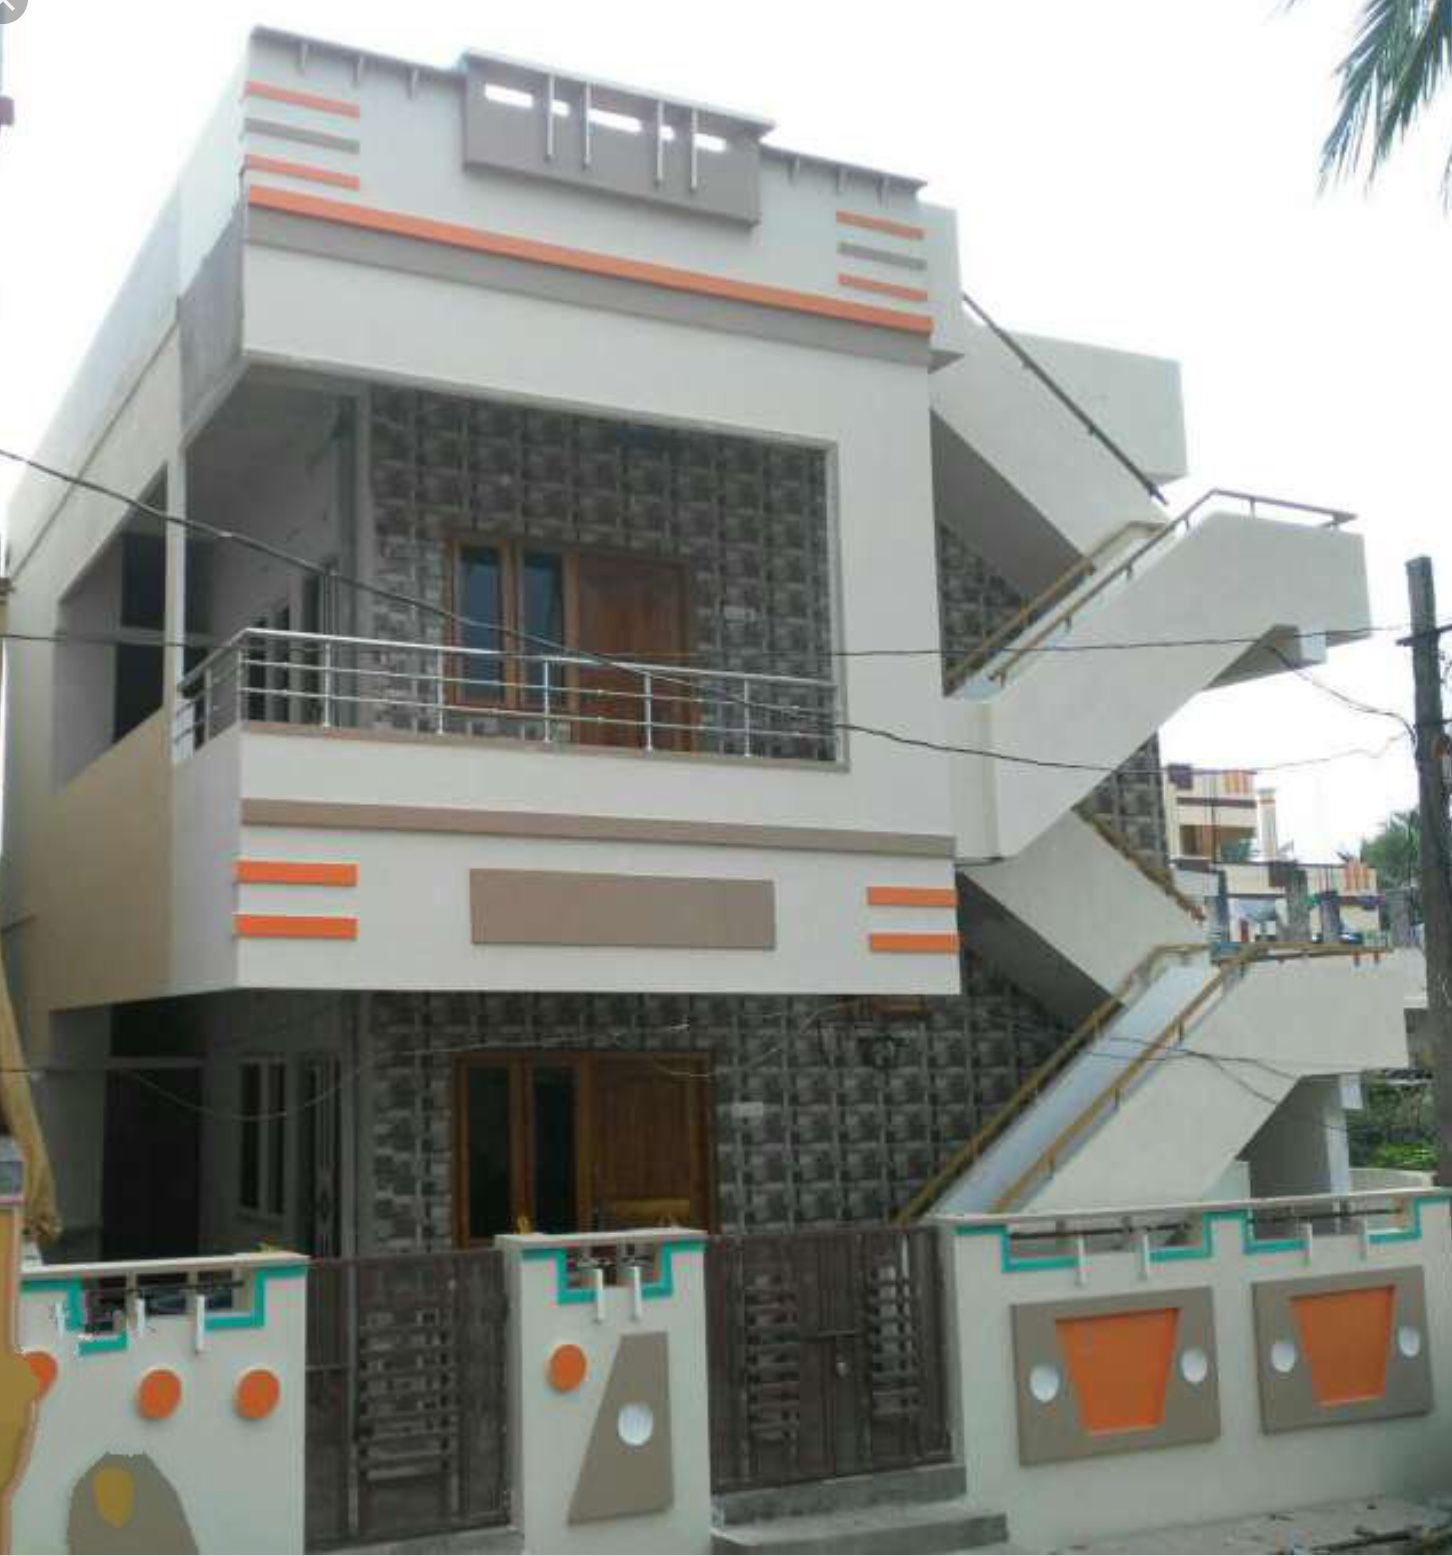 Two floors house... Architectural house plans, Village